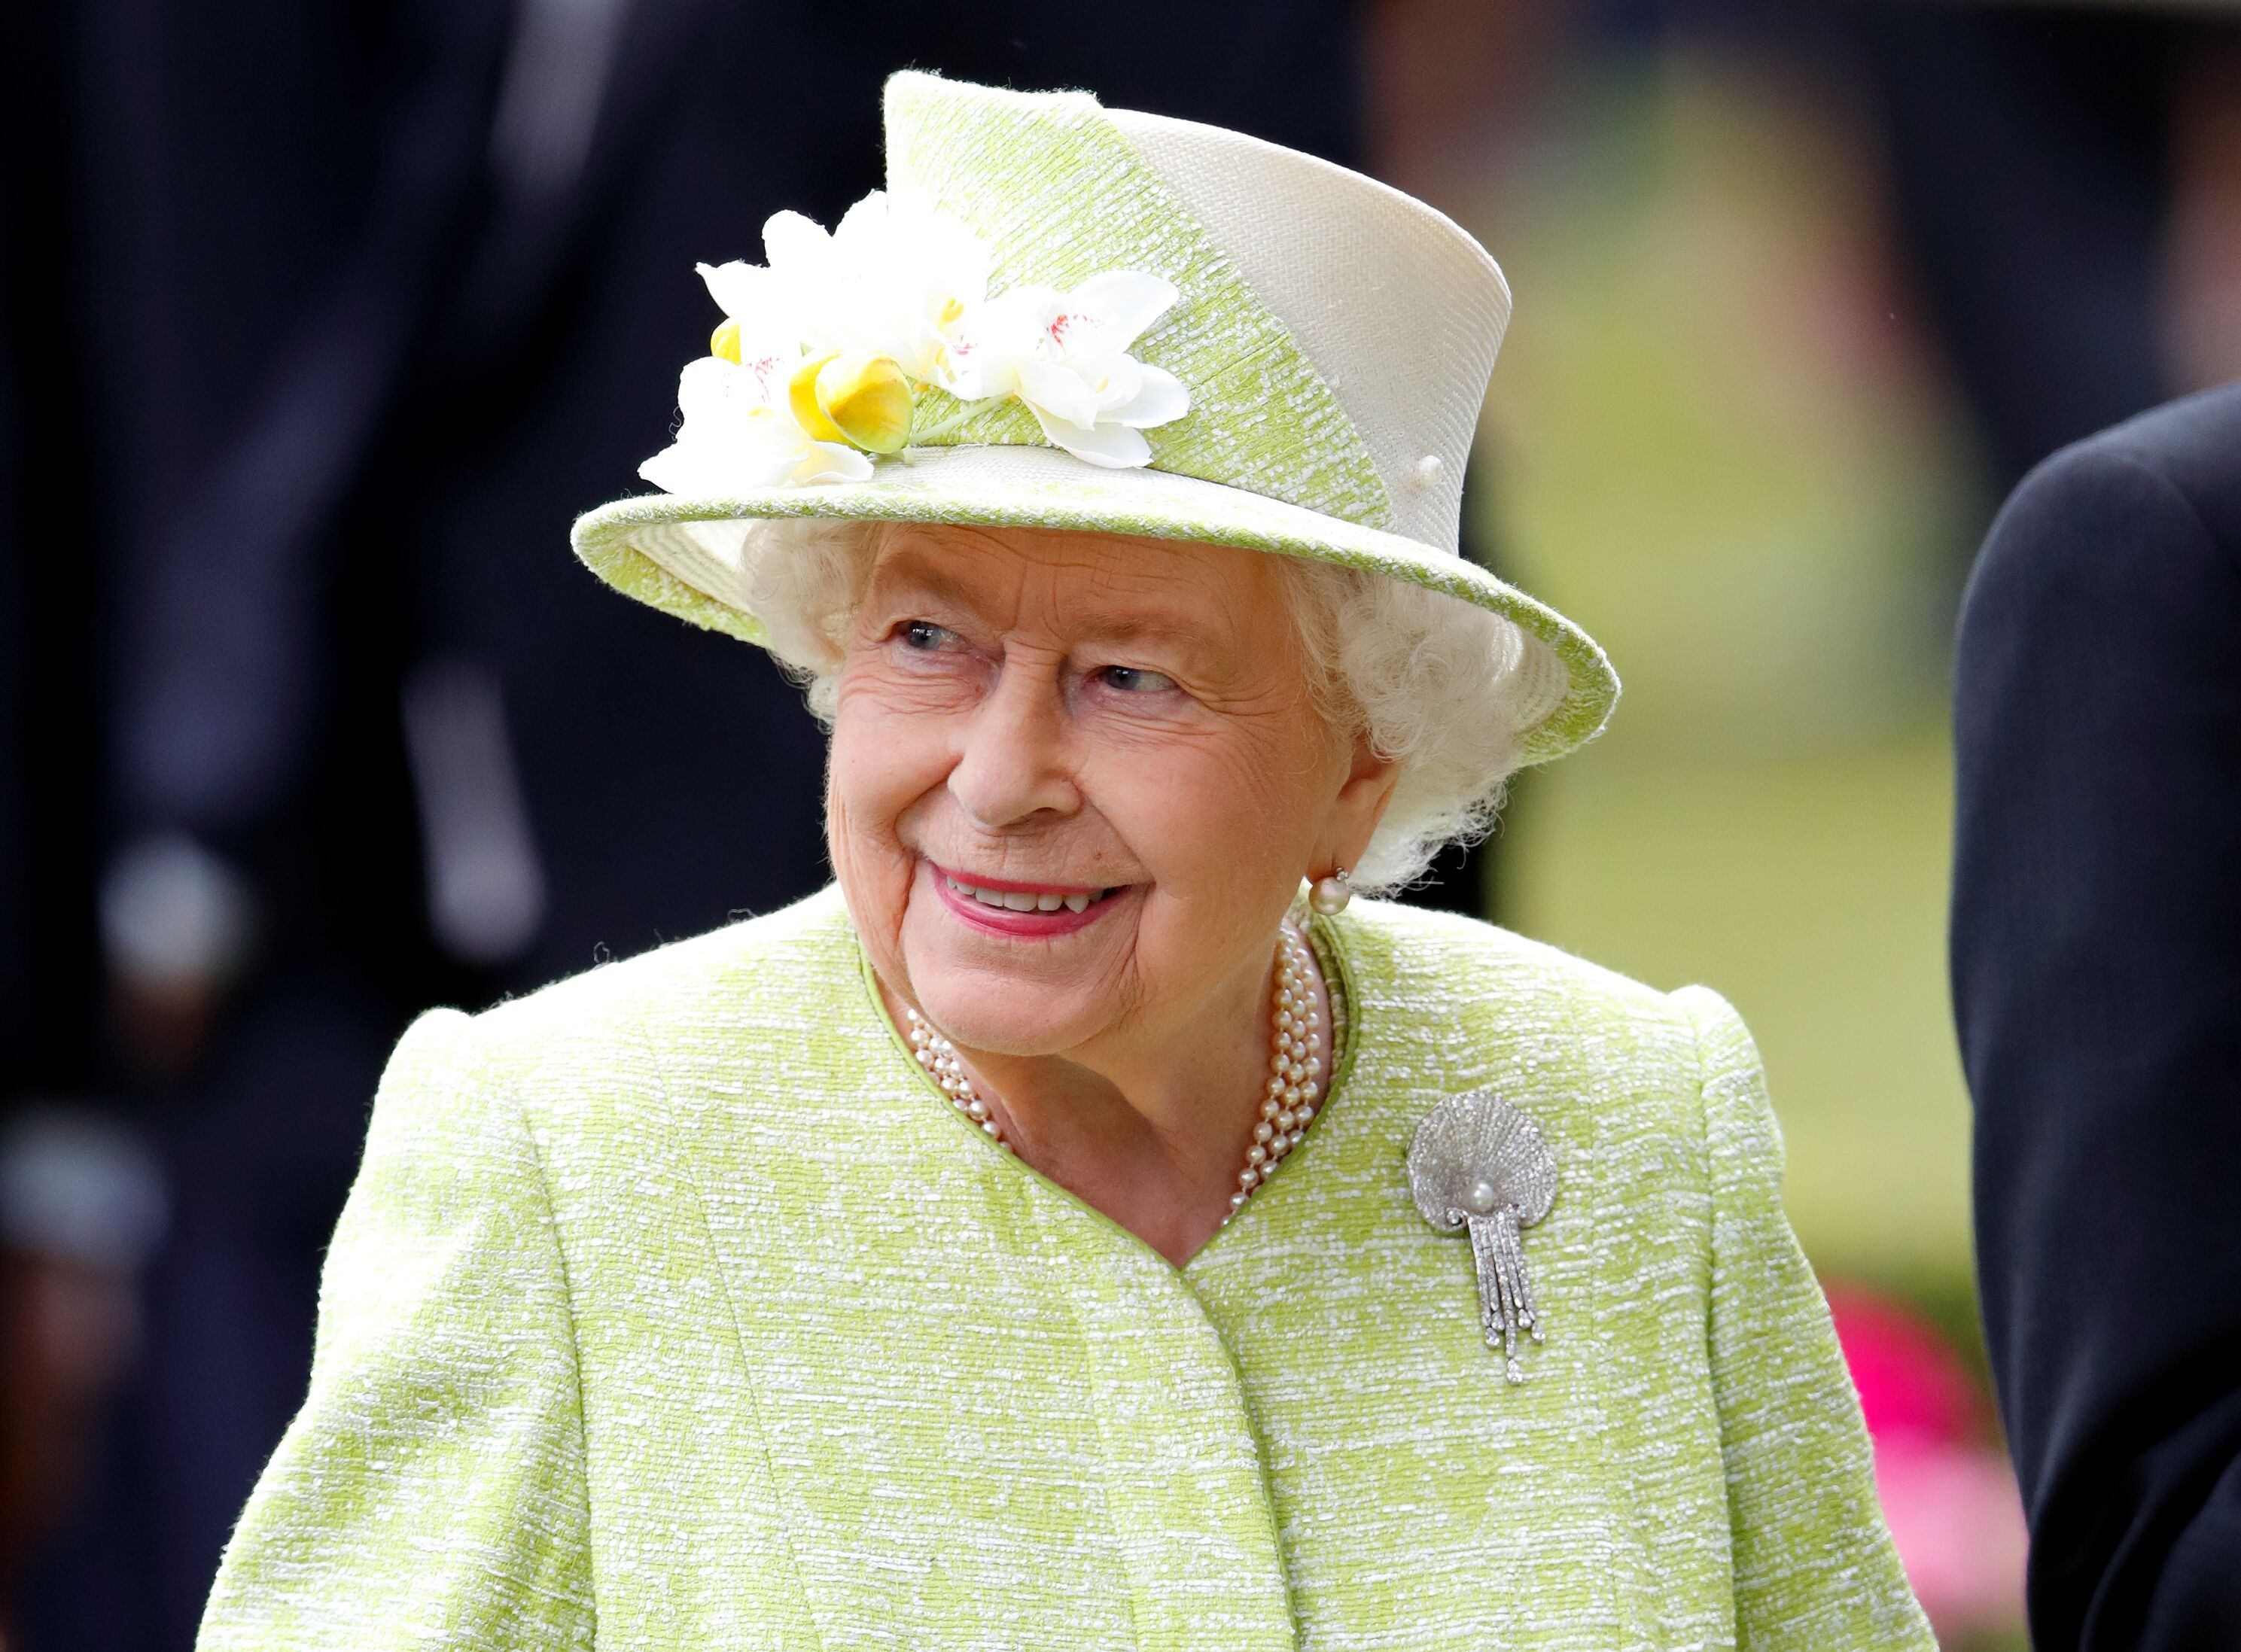 Queen Elizabeth II attends day five of Royal Ascot at Ascot Racecourse on June 22, 2019 | Photo: Getty Images